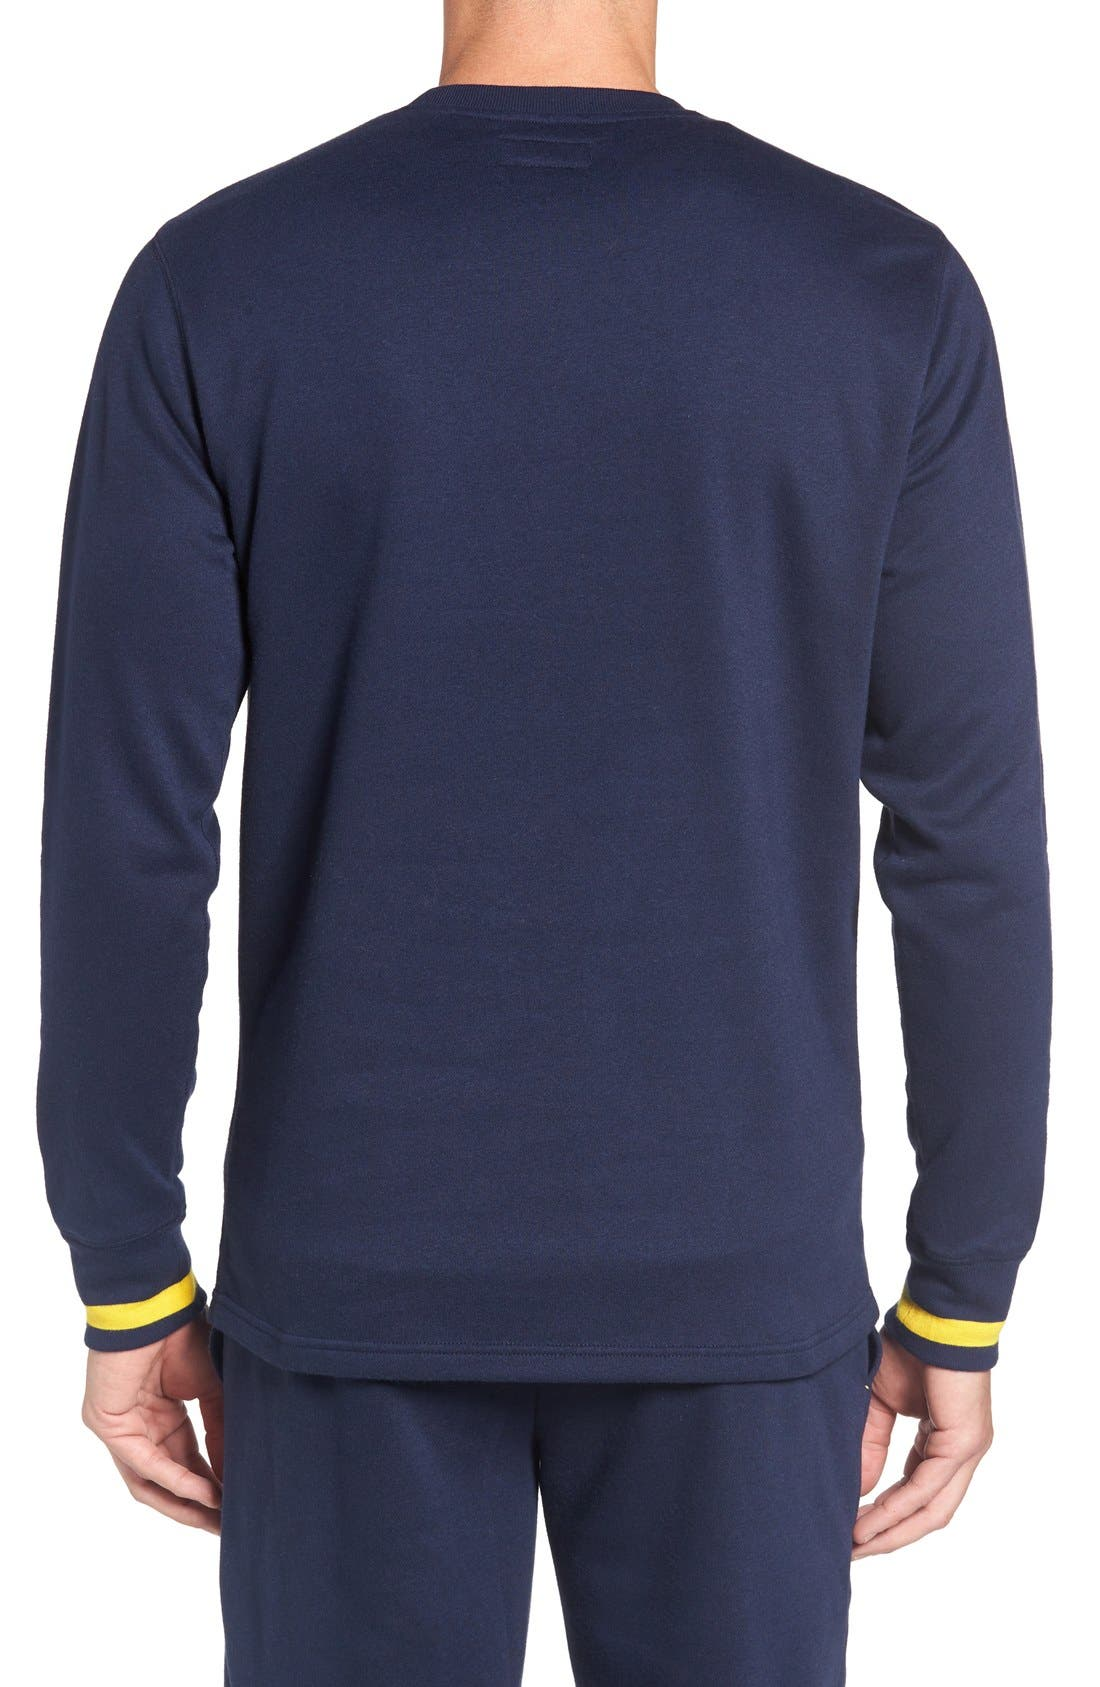 POLO RALPH LAUREN, Brushed Jersey Cotton Blend Crewneck Sweatshirt, Alternate thumbnail 6, color, CRUISE NAVY